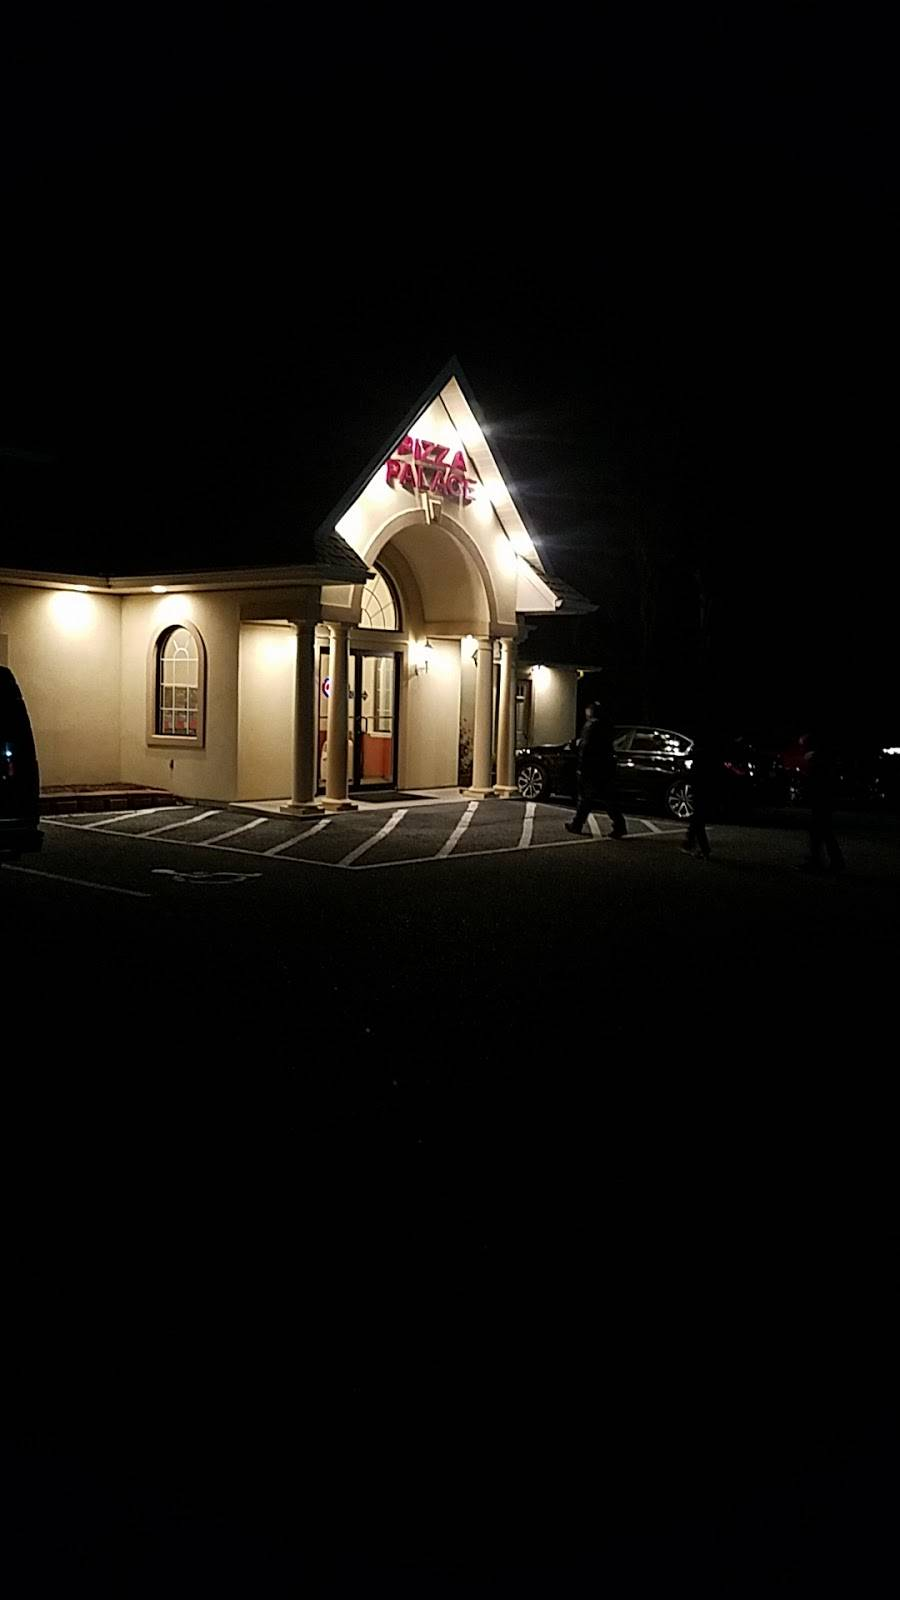 Pizza Palace | restaurant | 555 E 28th Division Hwy, Lititz, PA 17543, USA | 7176261970 OR +1 717-626-1970